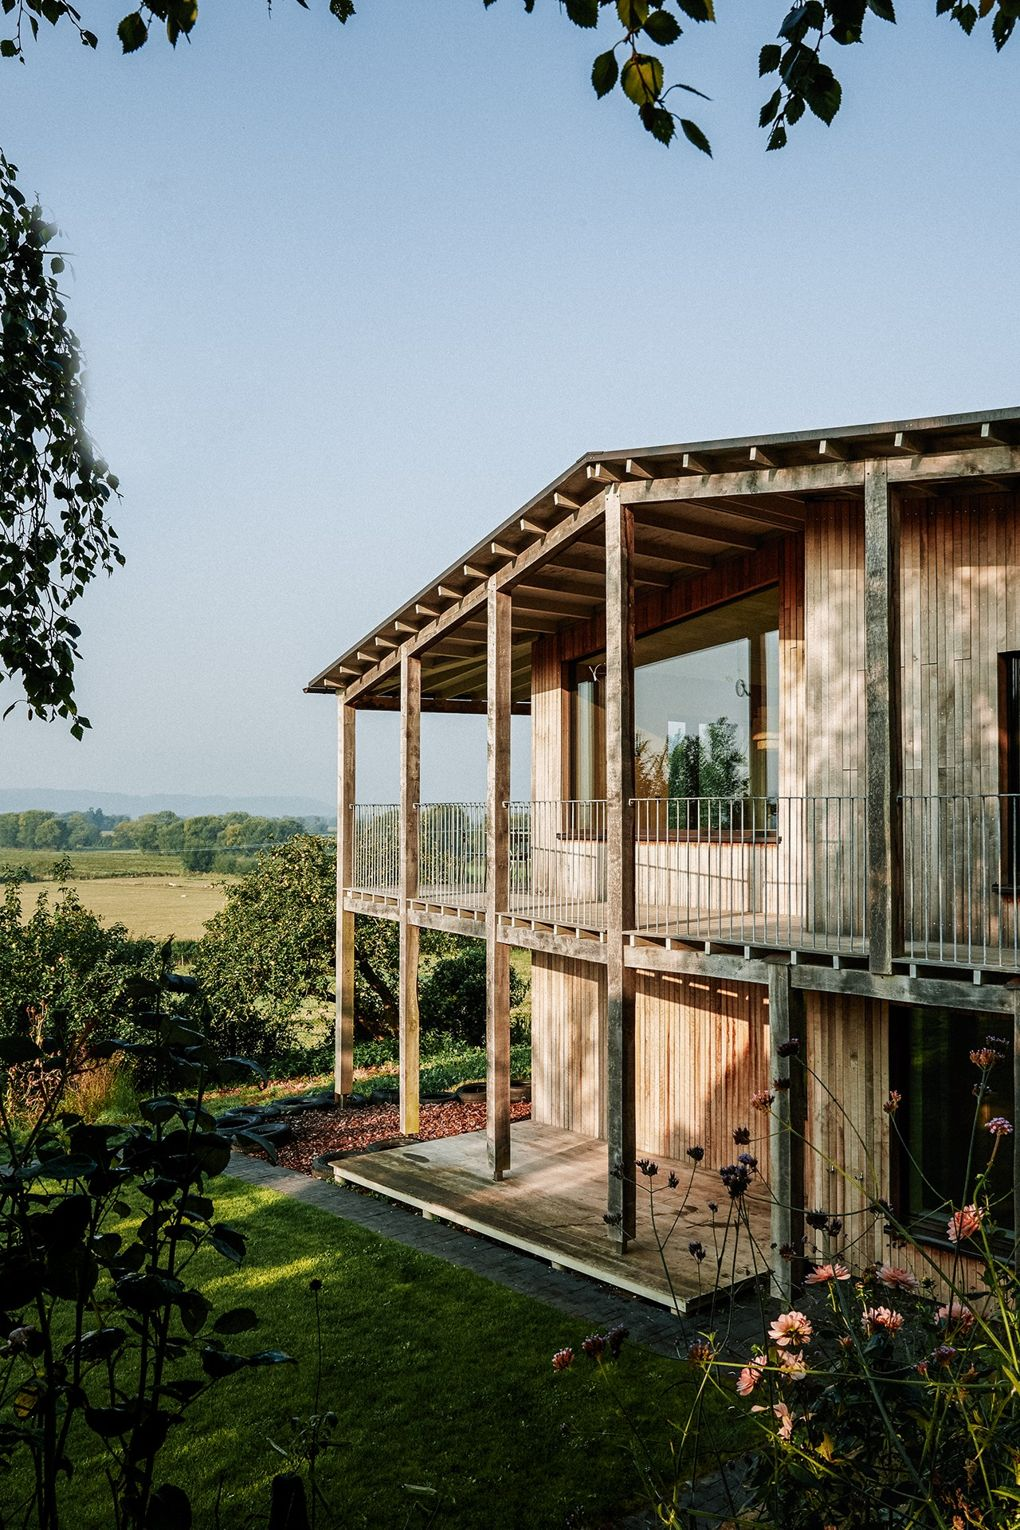 Innovative dream house in the international rural style for a pure enjoyment of nature